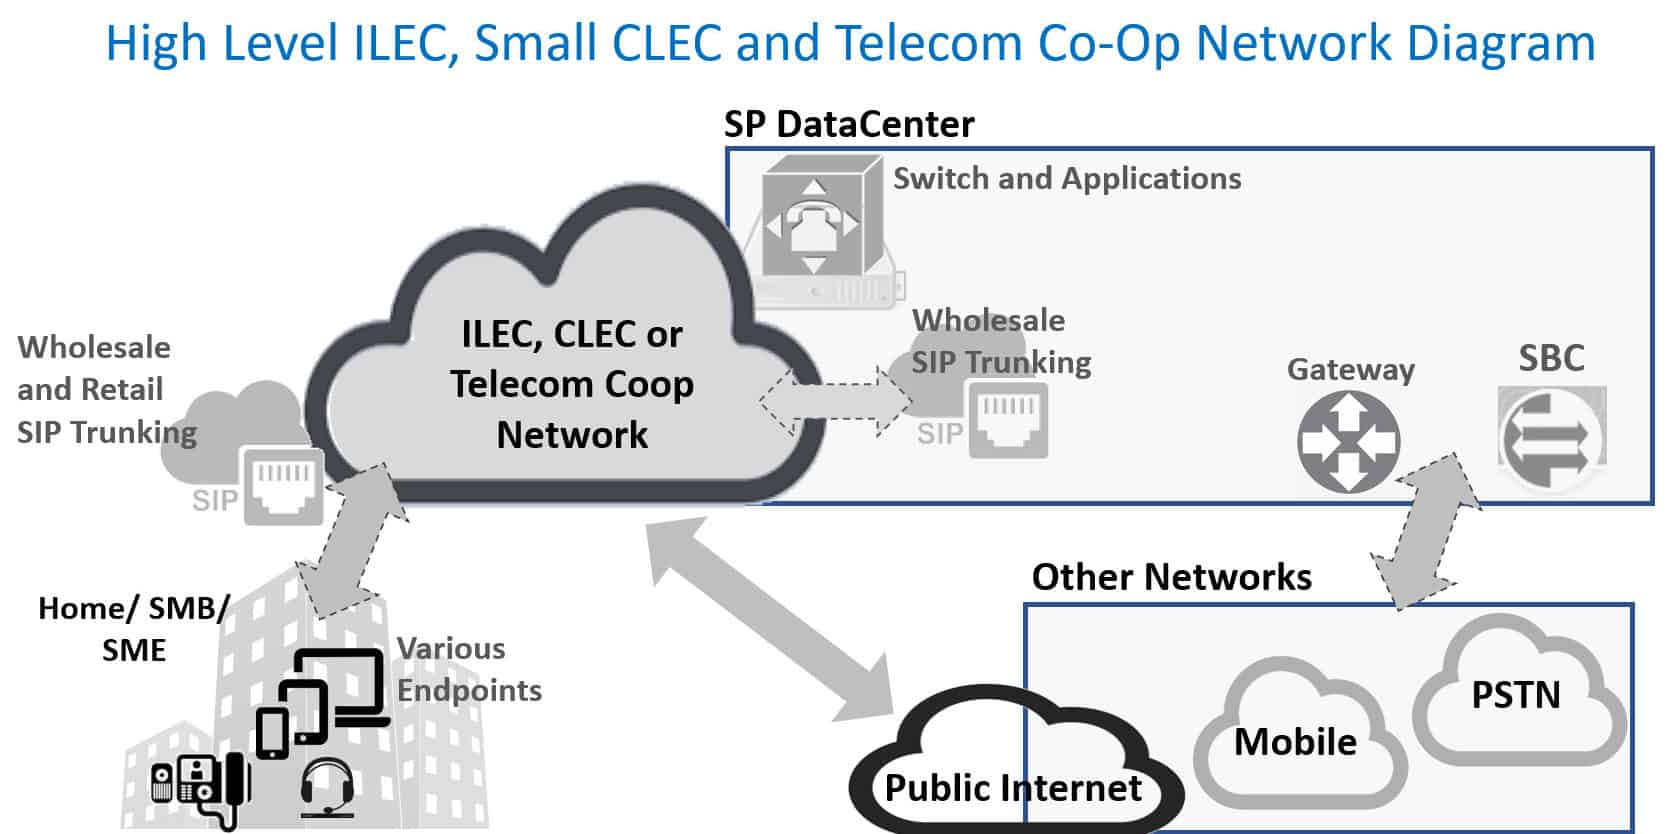 High Level ILEC, CLEC, and Tele Coop Network Diagram